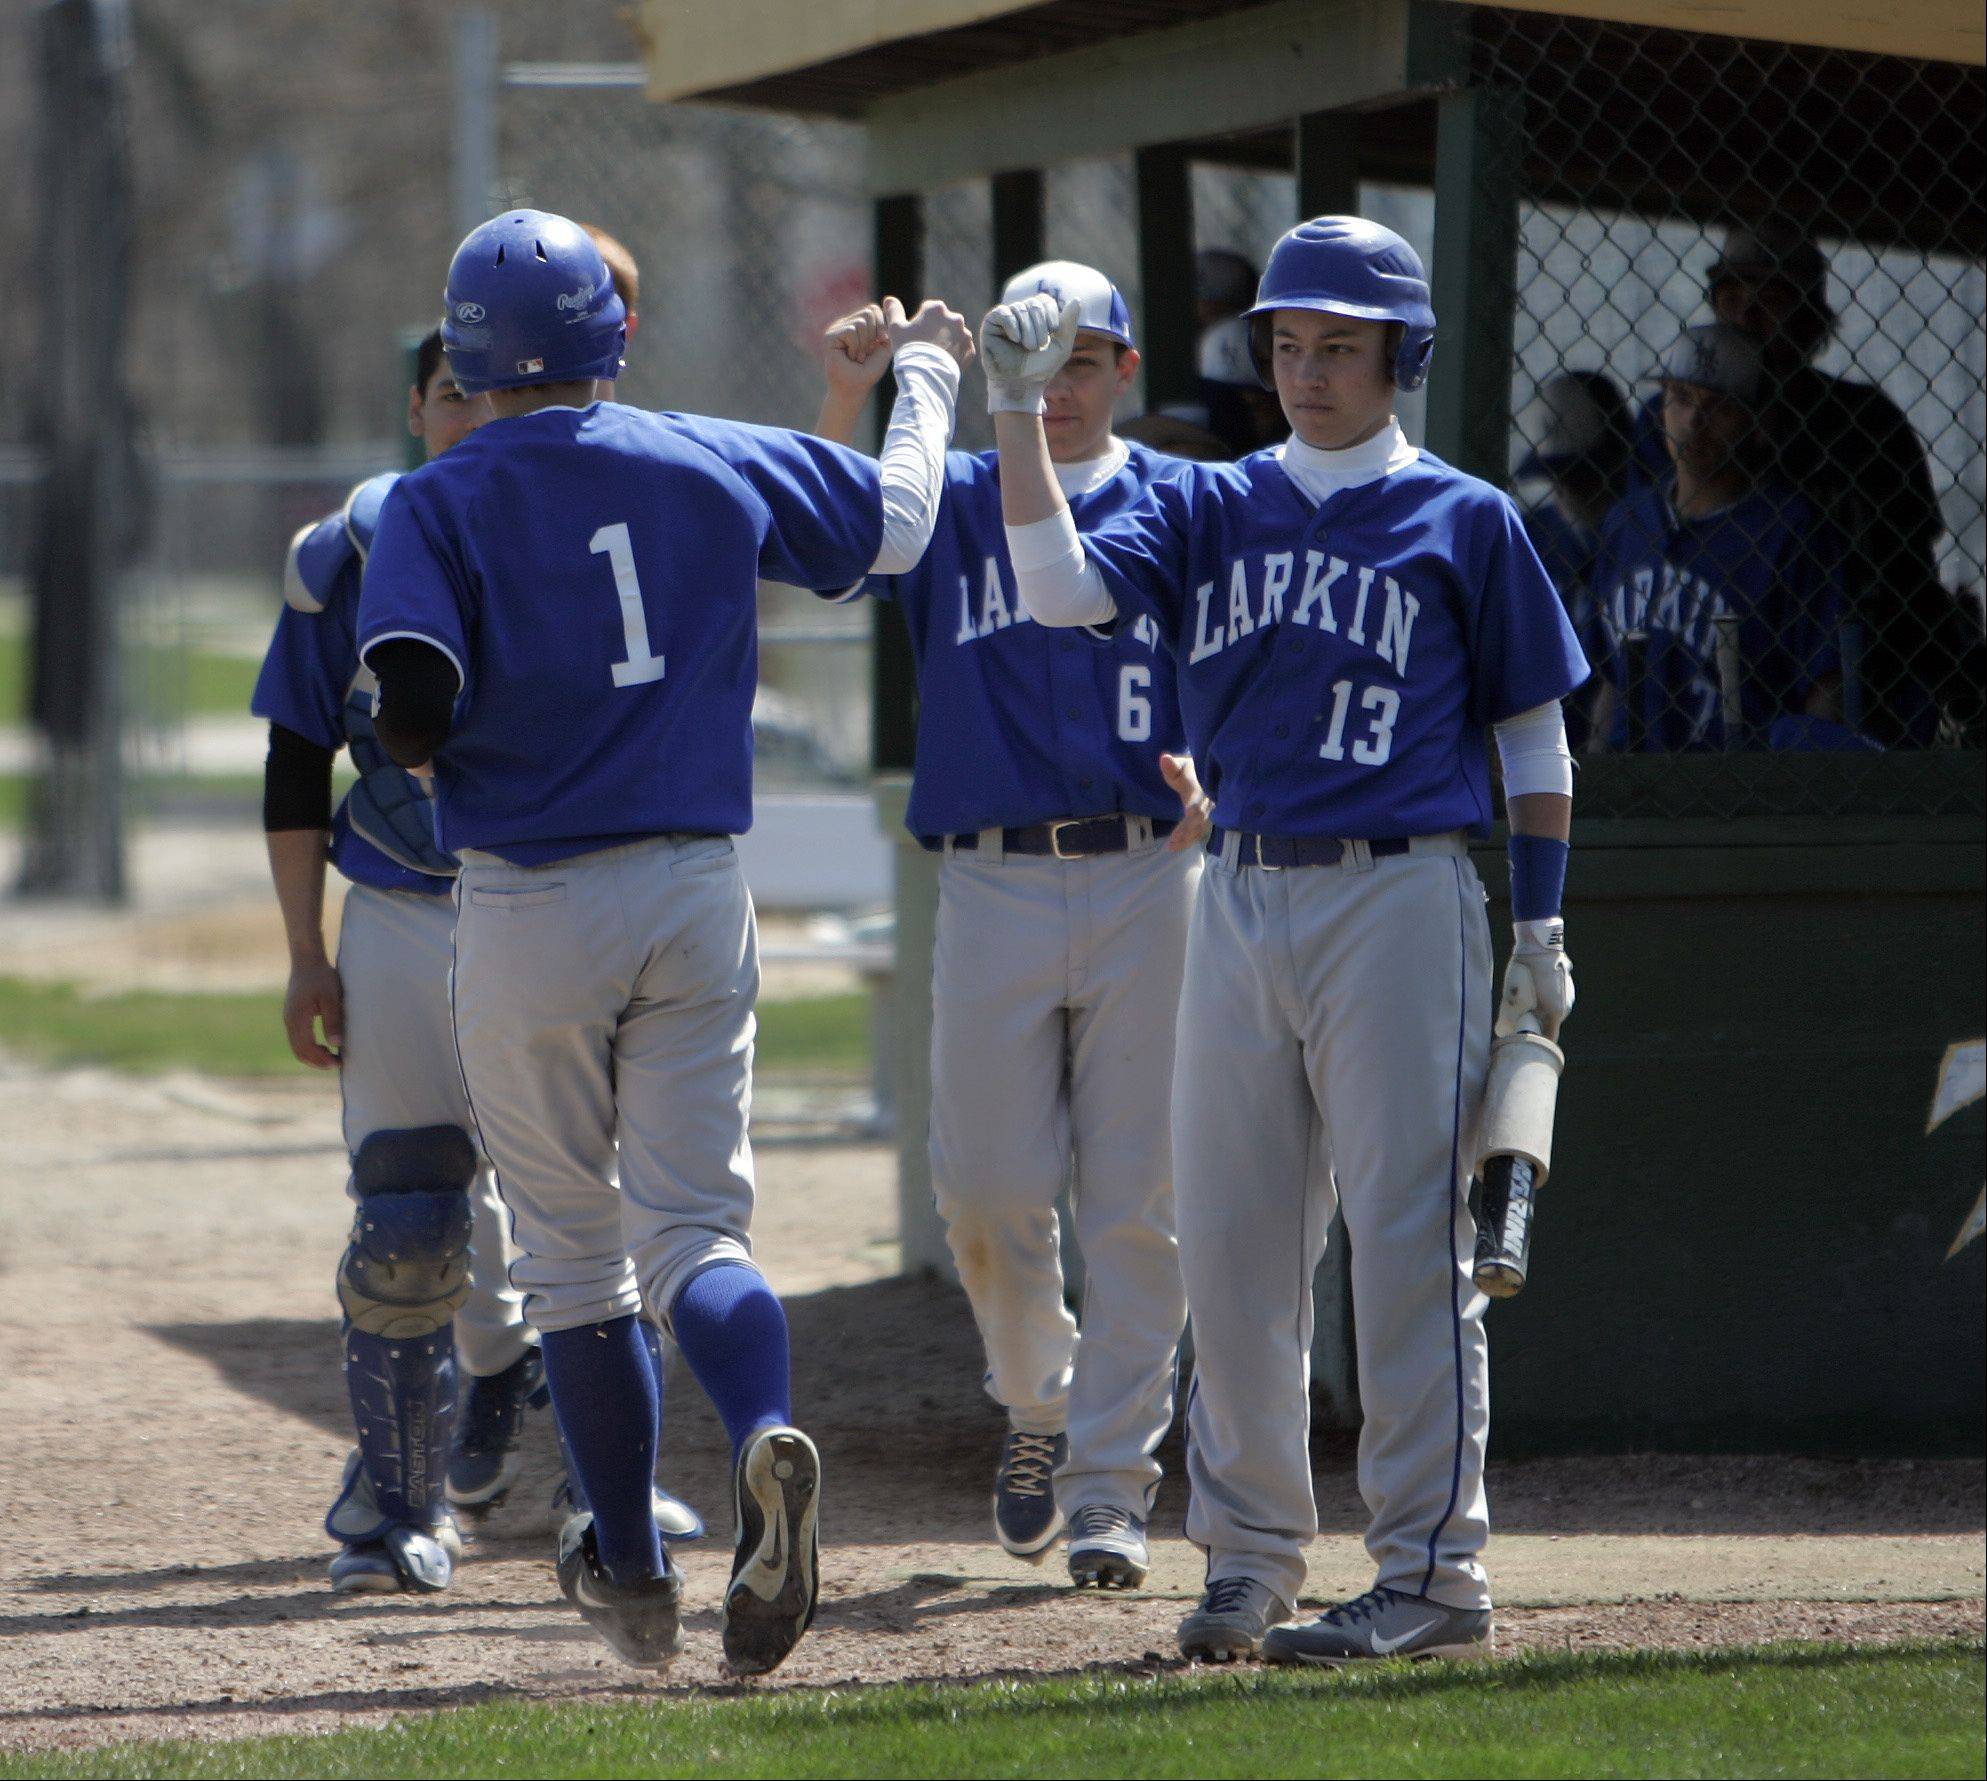 Larkin's Rob Bond is greeted by his teammates after scoring against Elgin Saturday at Trout Park.